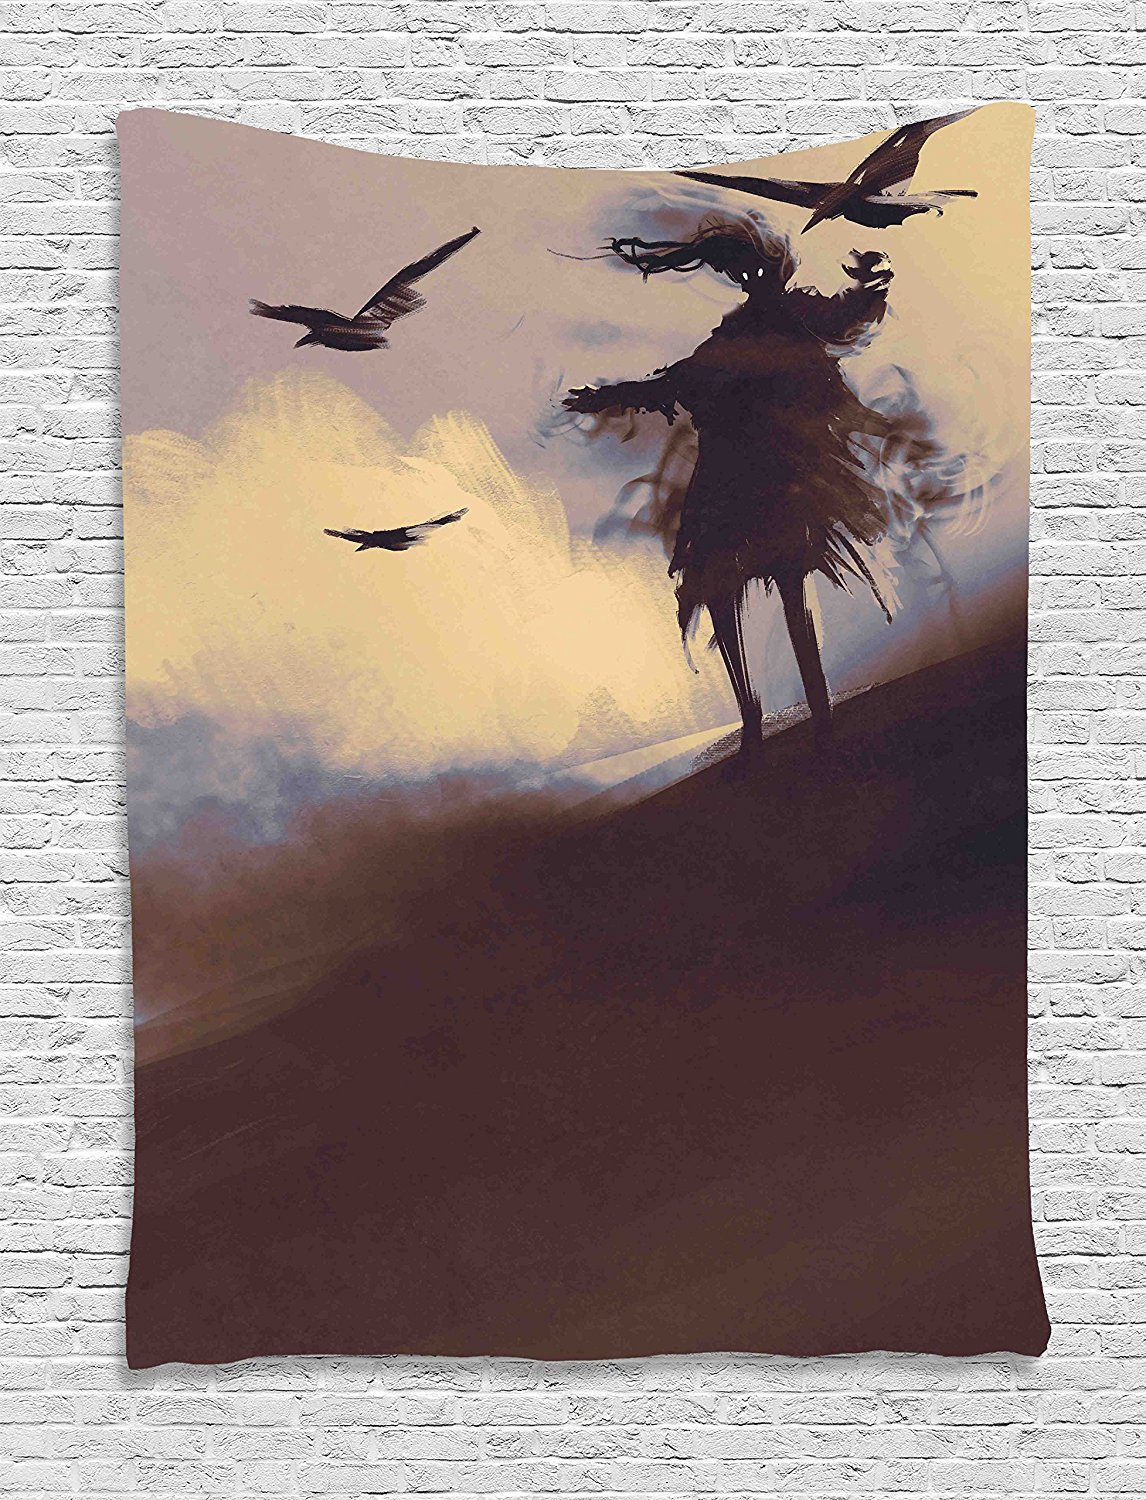 Horror Decor Tapestry, Dark Soul From a Scary Movie Film on the Hills with Clouds and Flying Crows Print, Wall Hanging for Bedroom Living Room Dorm, 40 W x 60 L Inches, Black